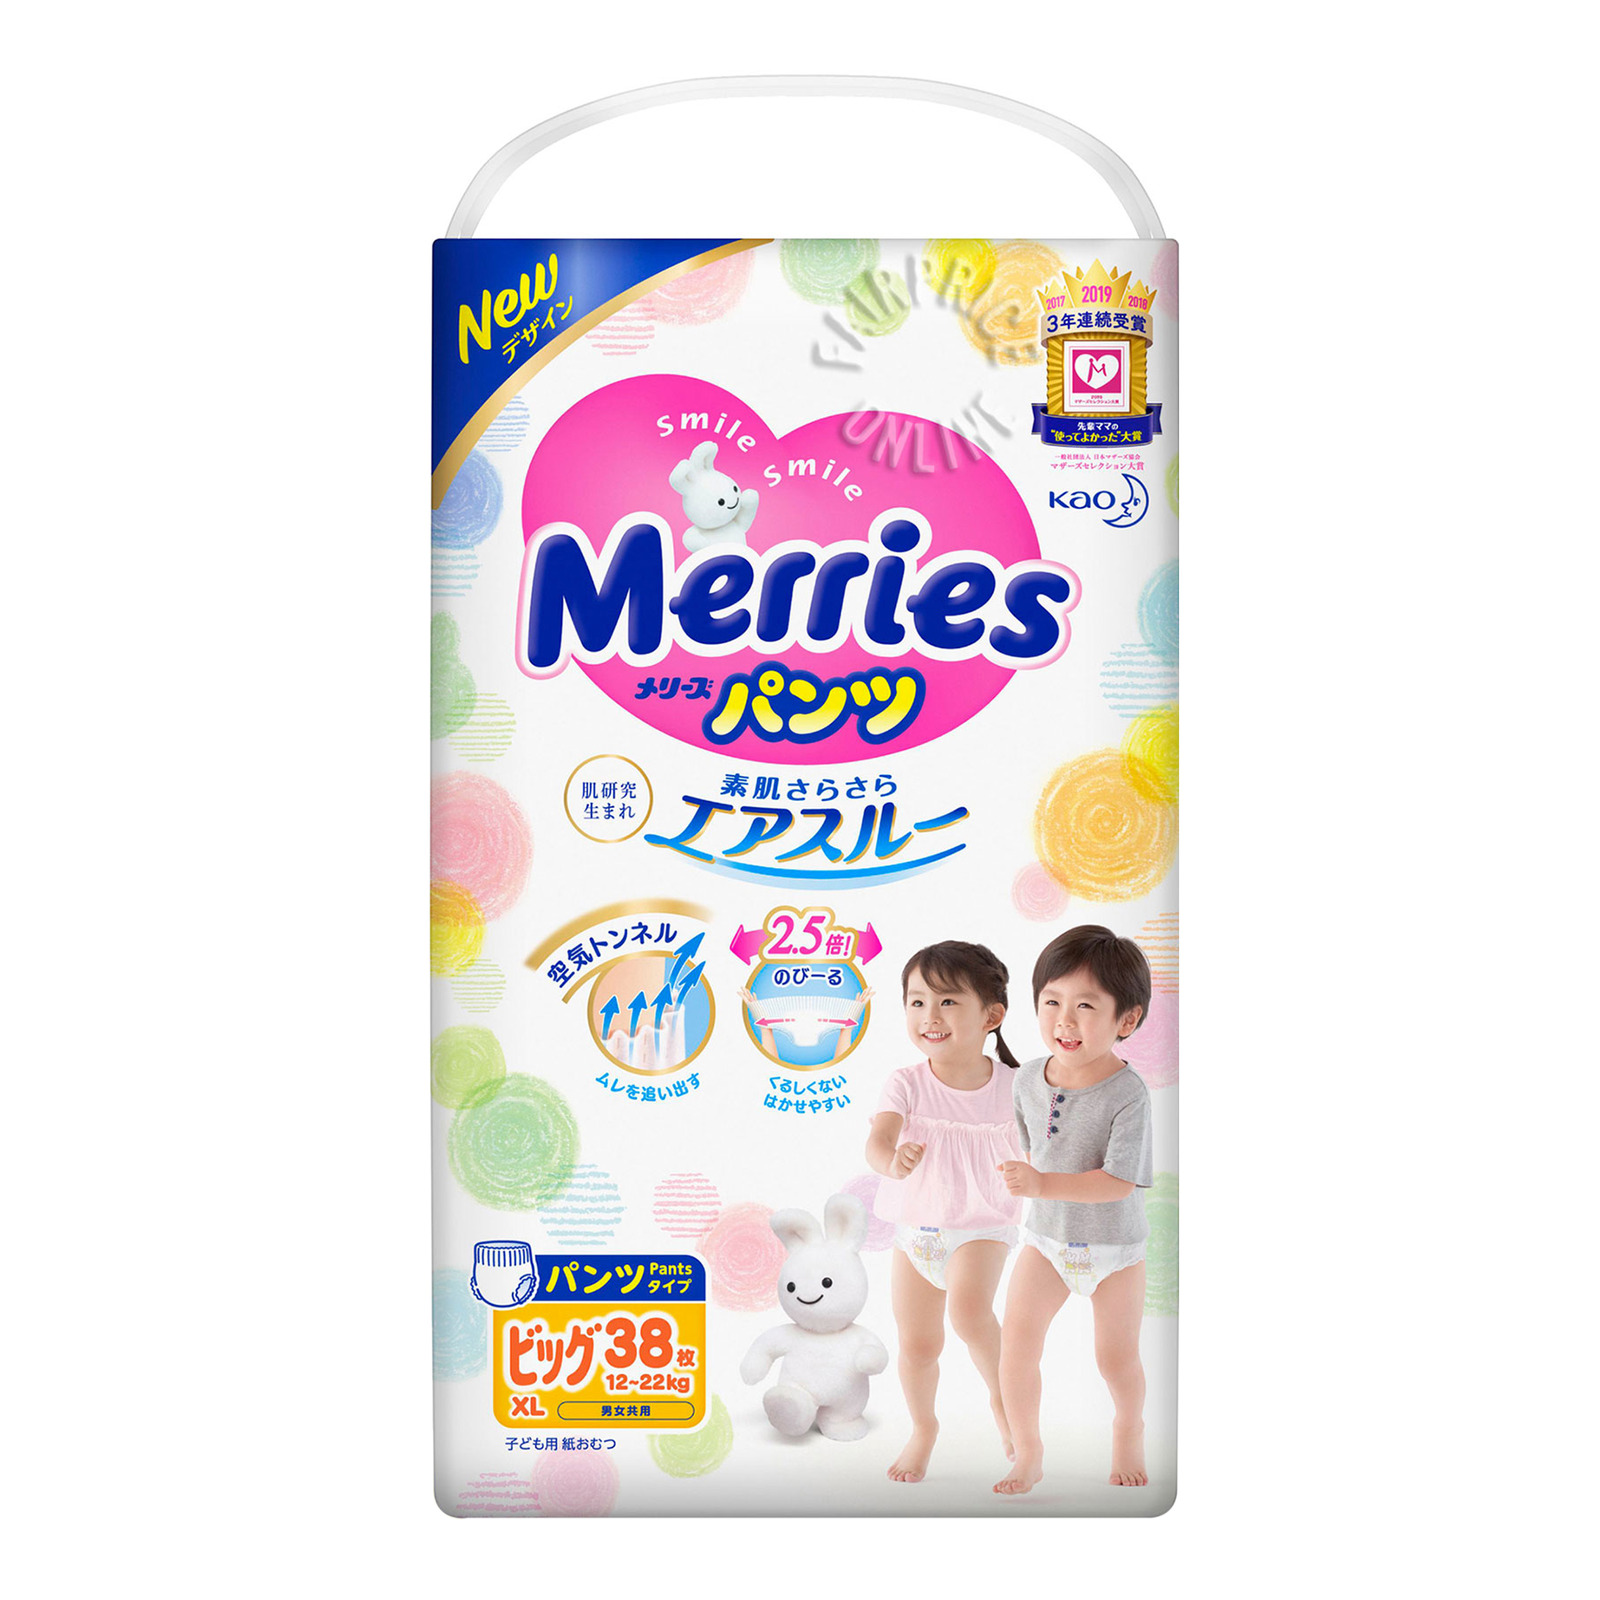 Merries Walker Pants - XL (12 - 22kg)